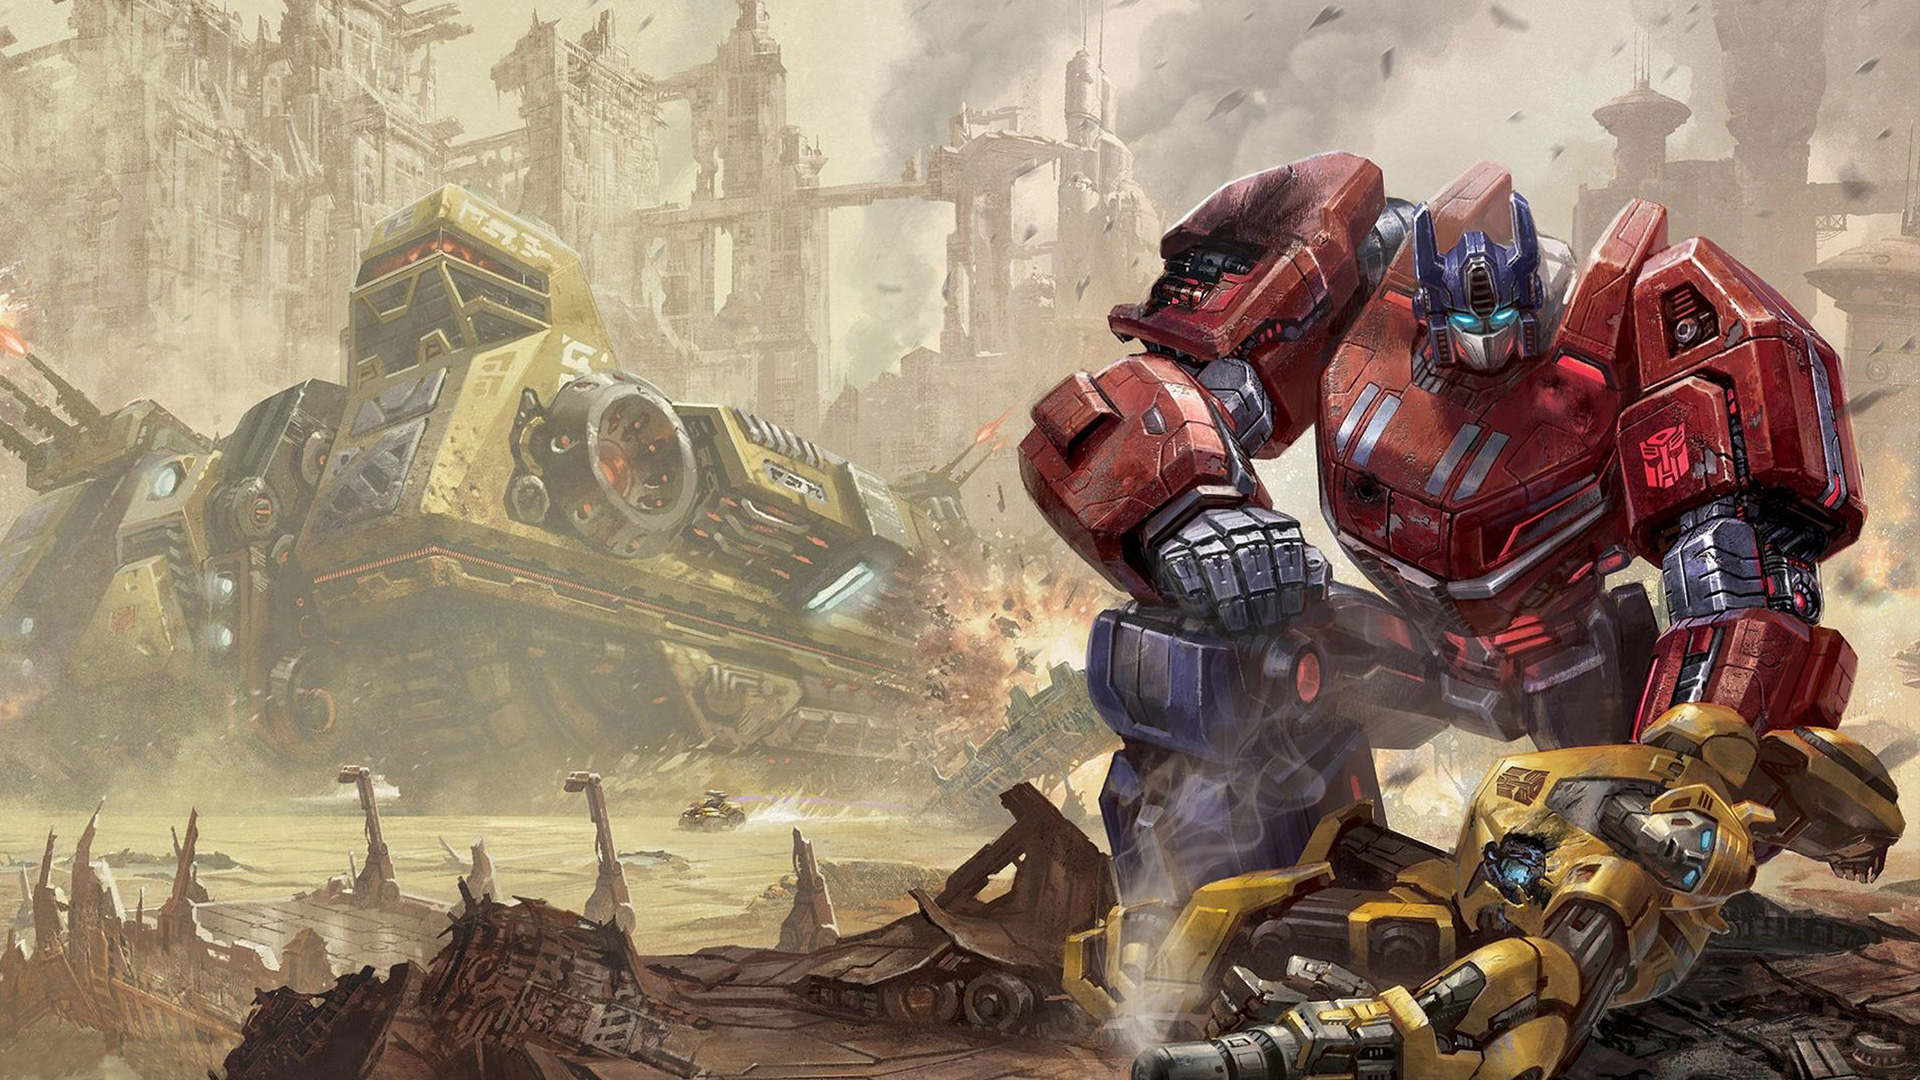 Free Transformers: Fall of Cybertron Wallpaper in 1920x1080